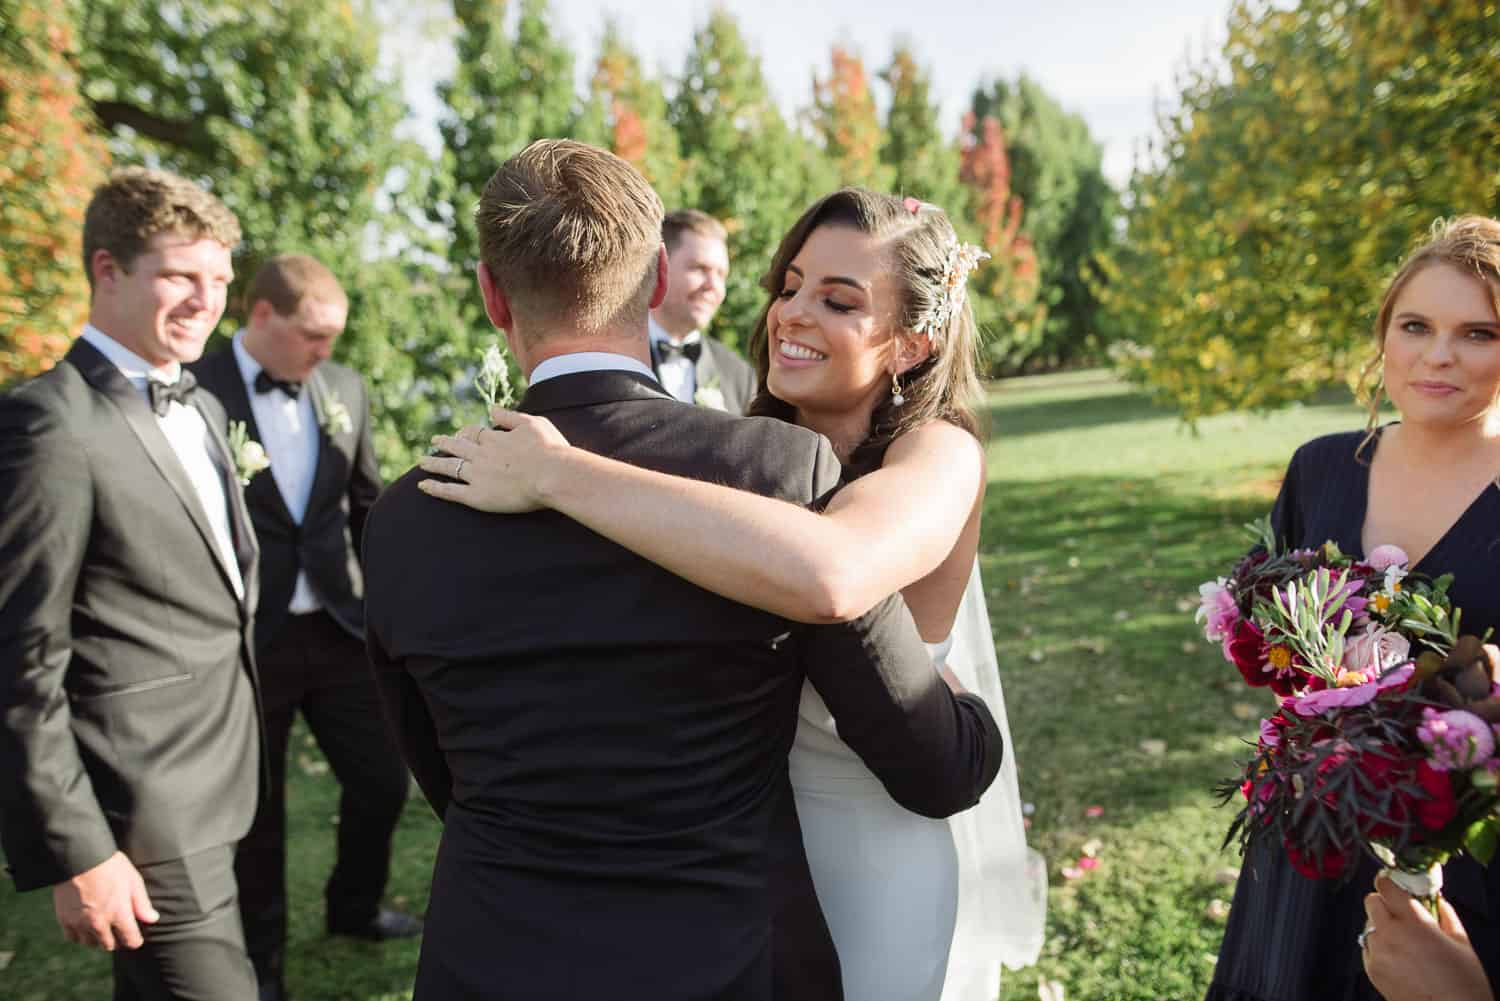 Bride and groom hugging at a backyard wedding